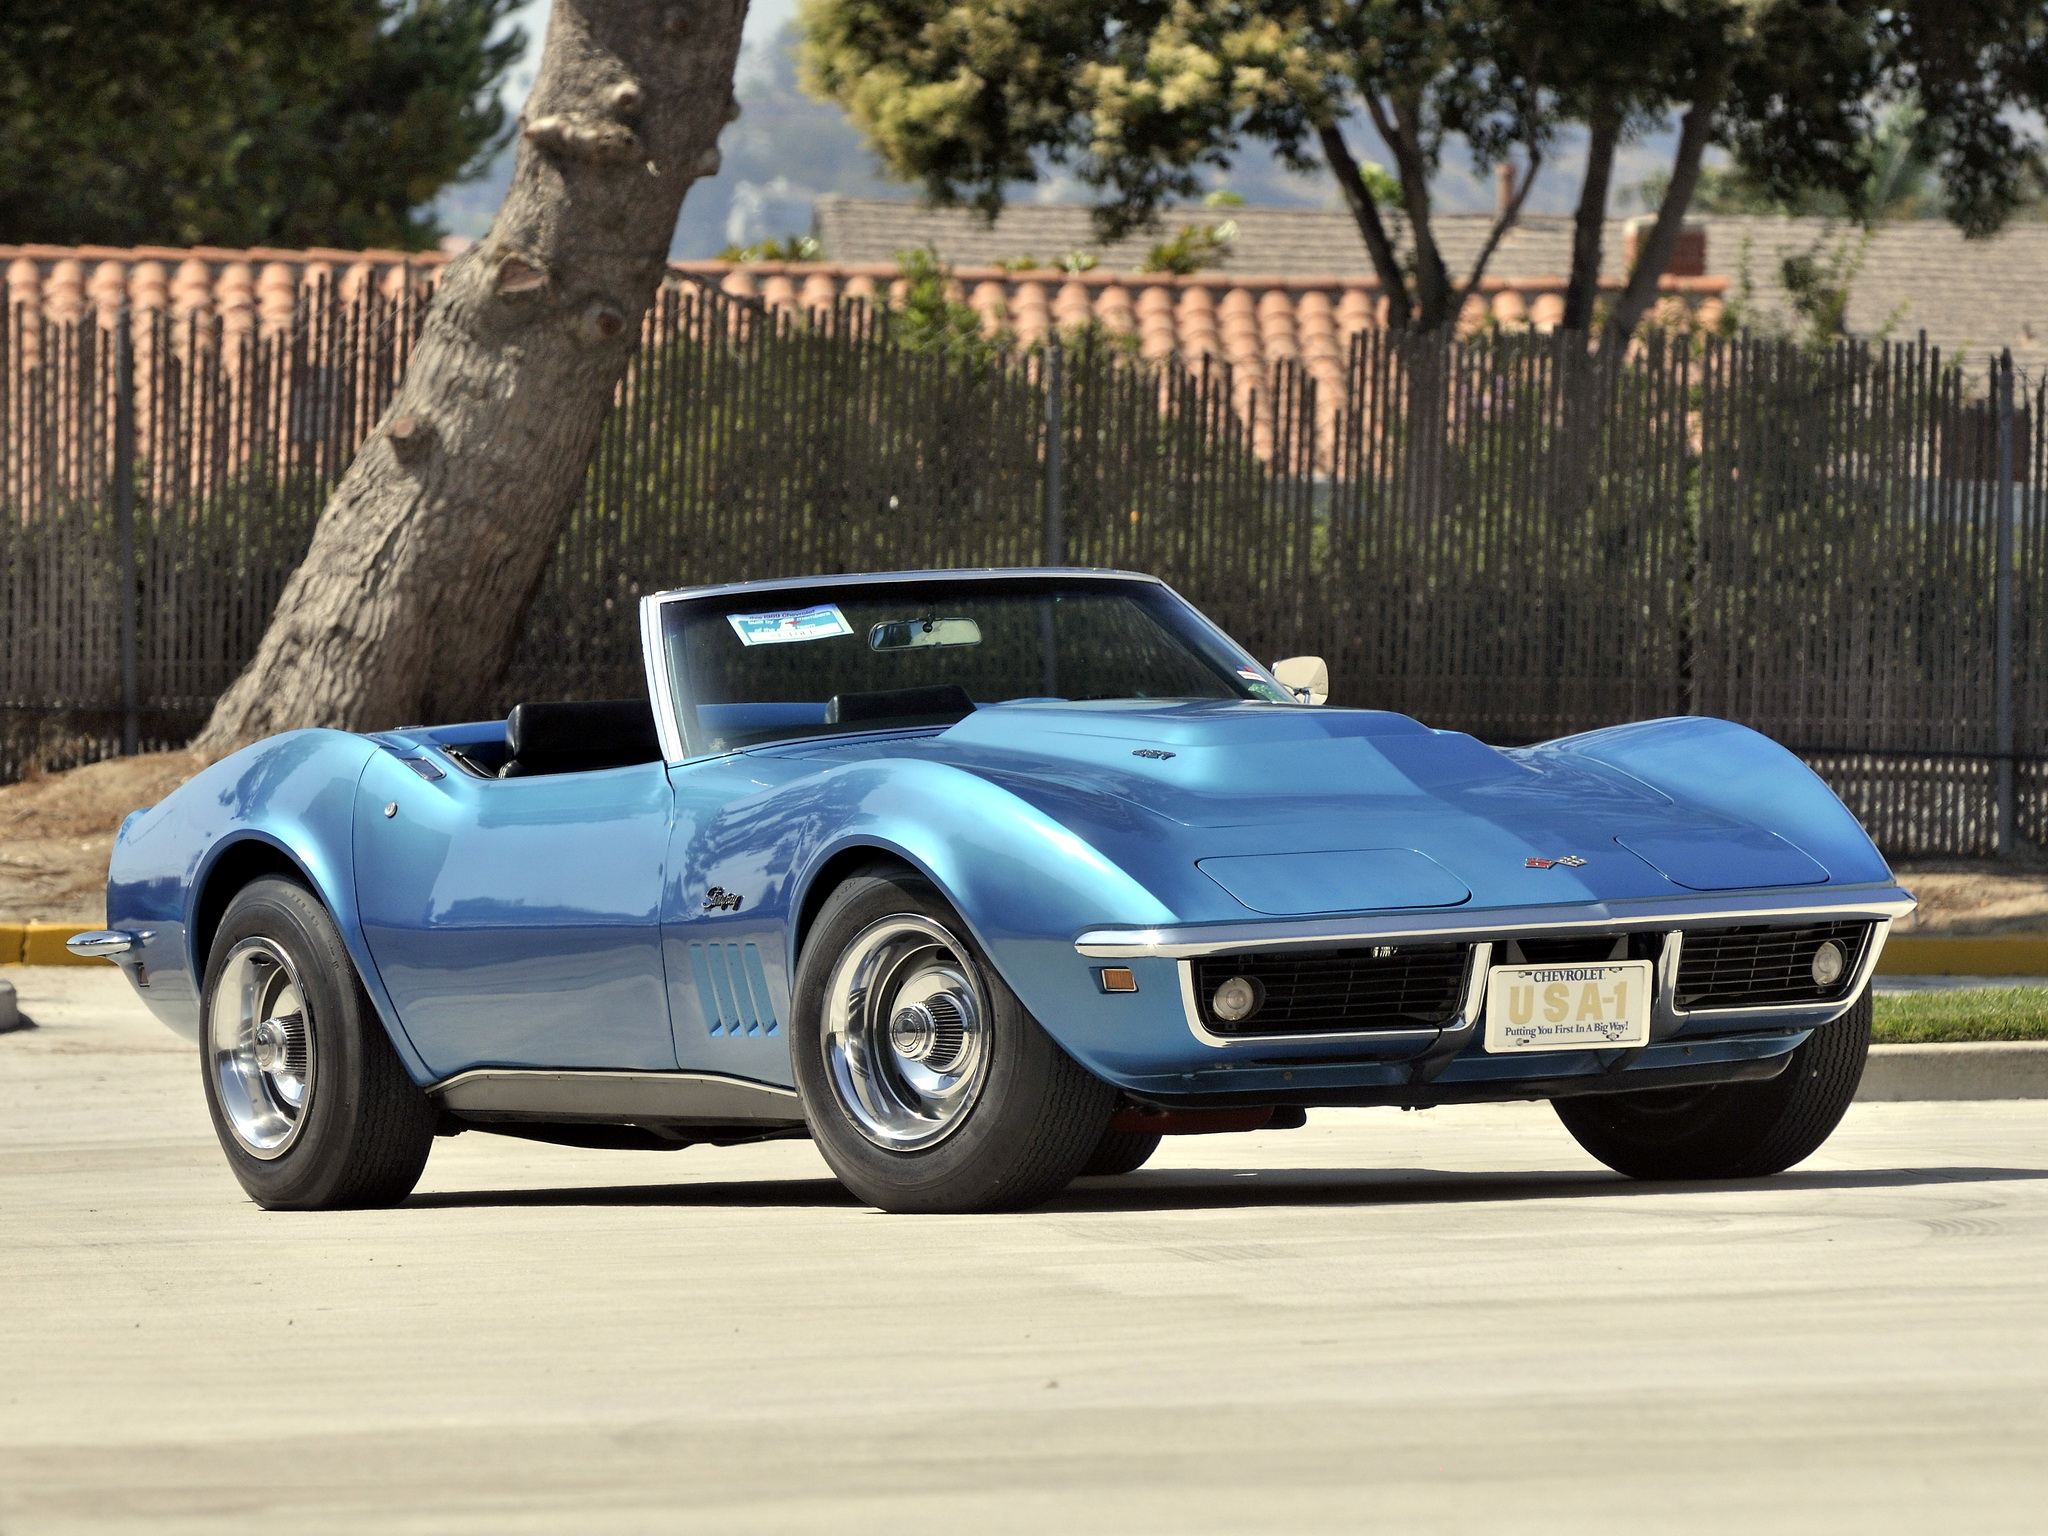 Chevrolet Corvette Stance Classic Muscle Cars Bluee Wallpaper